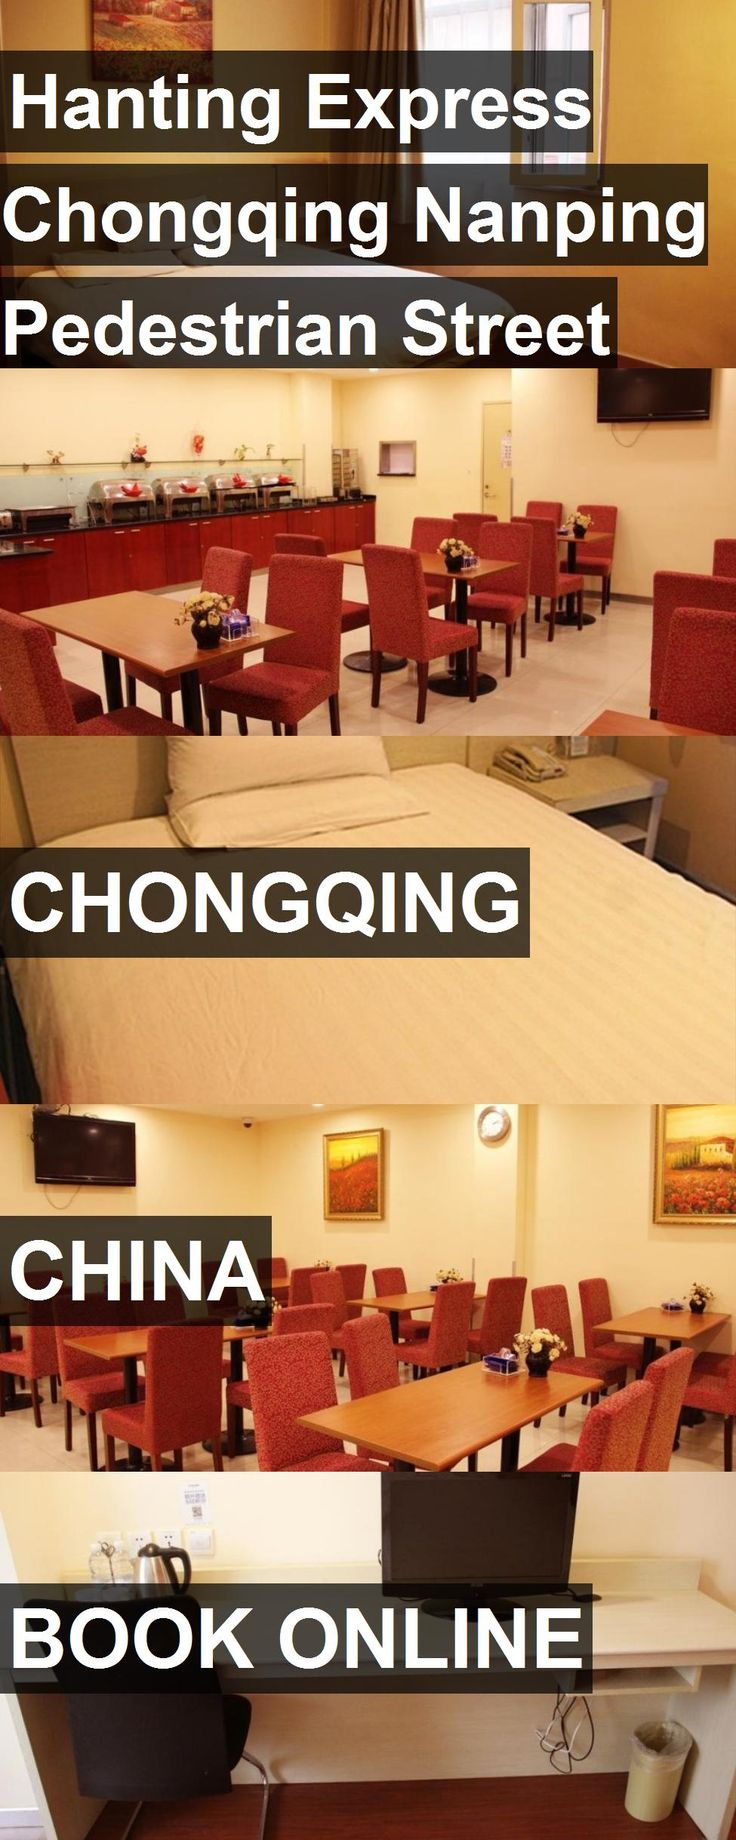 Hotel Hanting Express Chongqing Nanping Pedestrian Street in Chongqing, China. For more information, photos, reviews and best prices please follow the link. #China #Chongqing #travel #vacation #hotel